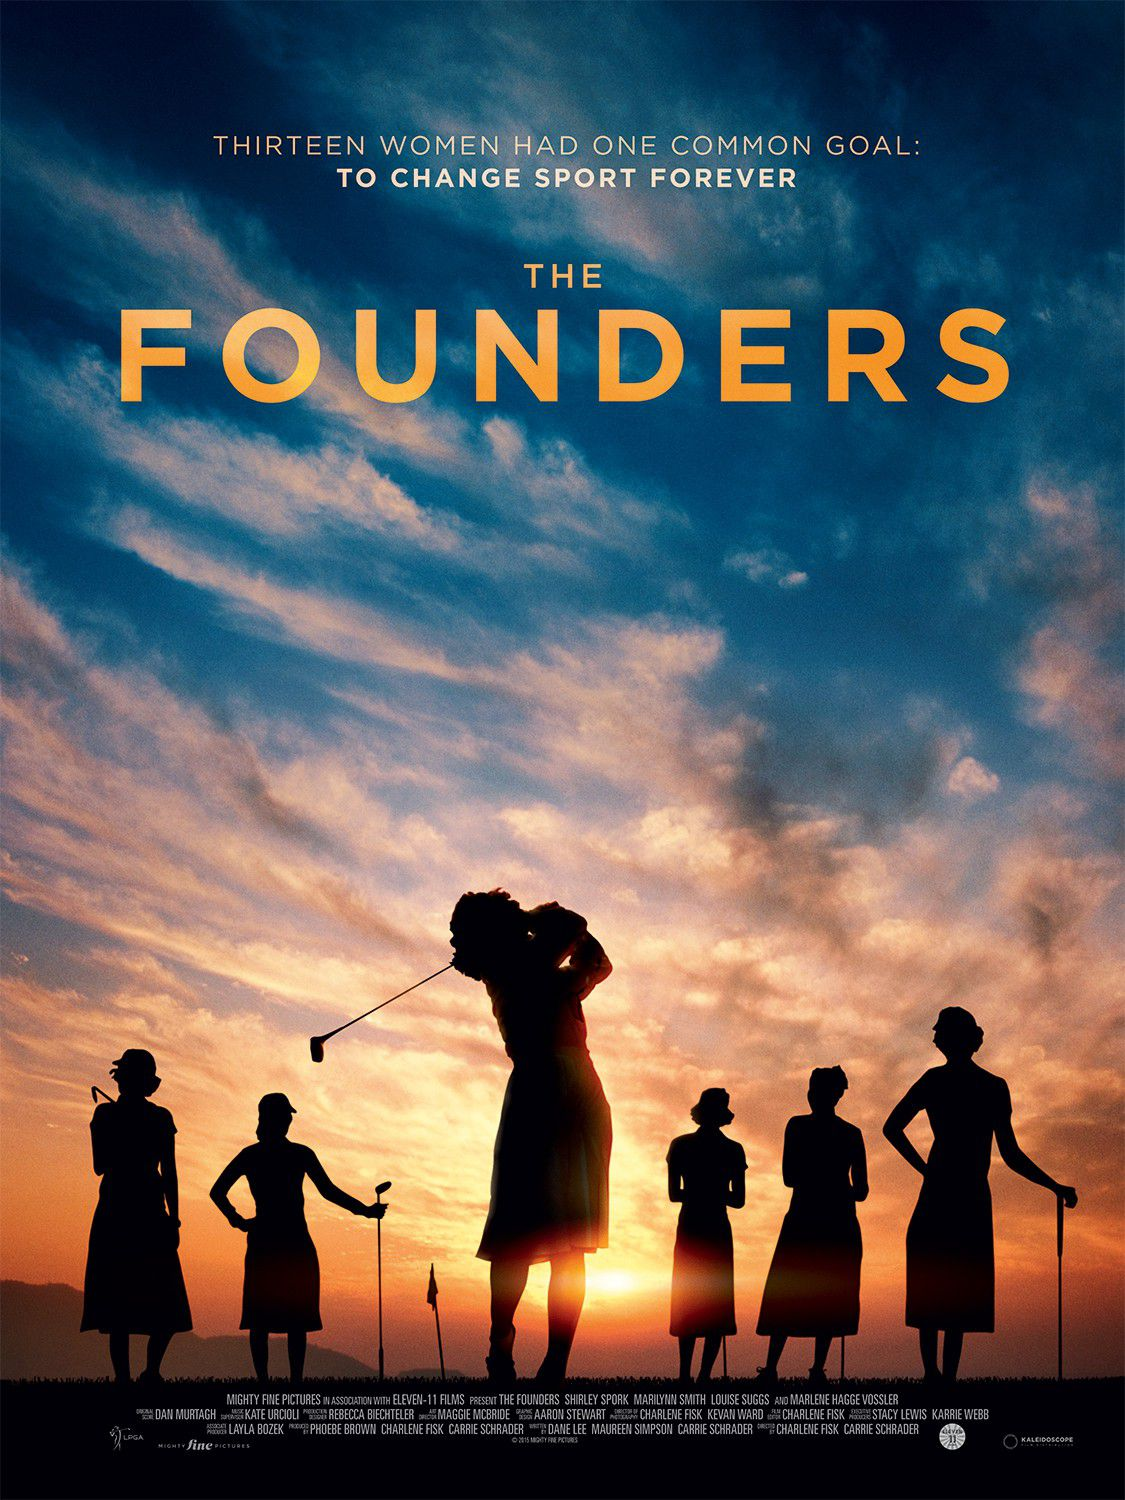 Founders - thirteen women had one common goal: change sport forever - Shirley Spork - Marilynn Smith - Louise Suggs - Marlene Hagge Vossler - film poster